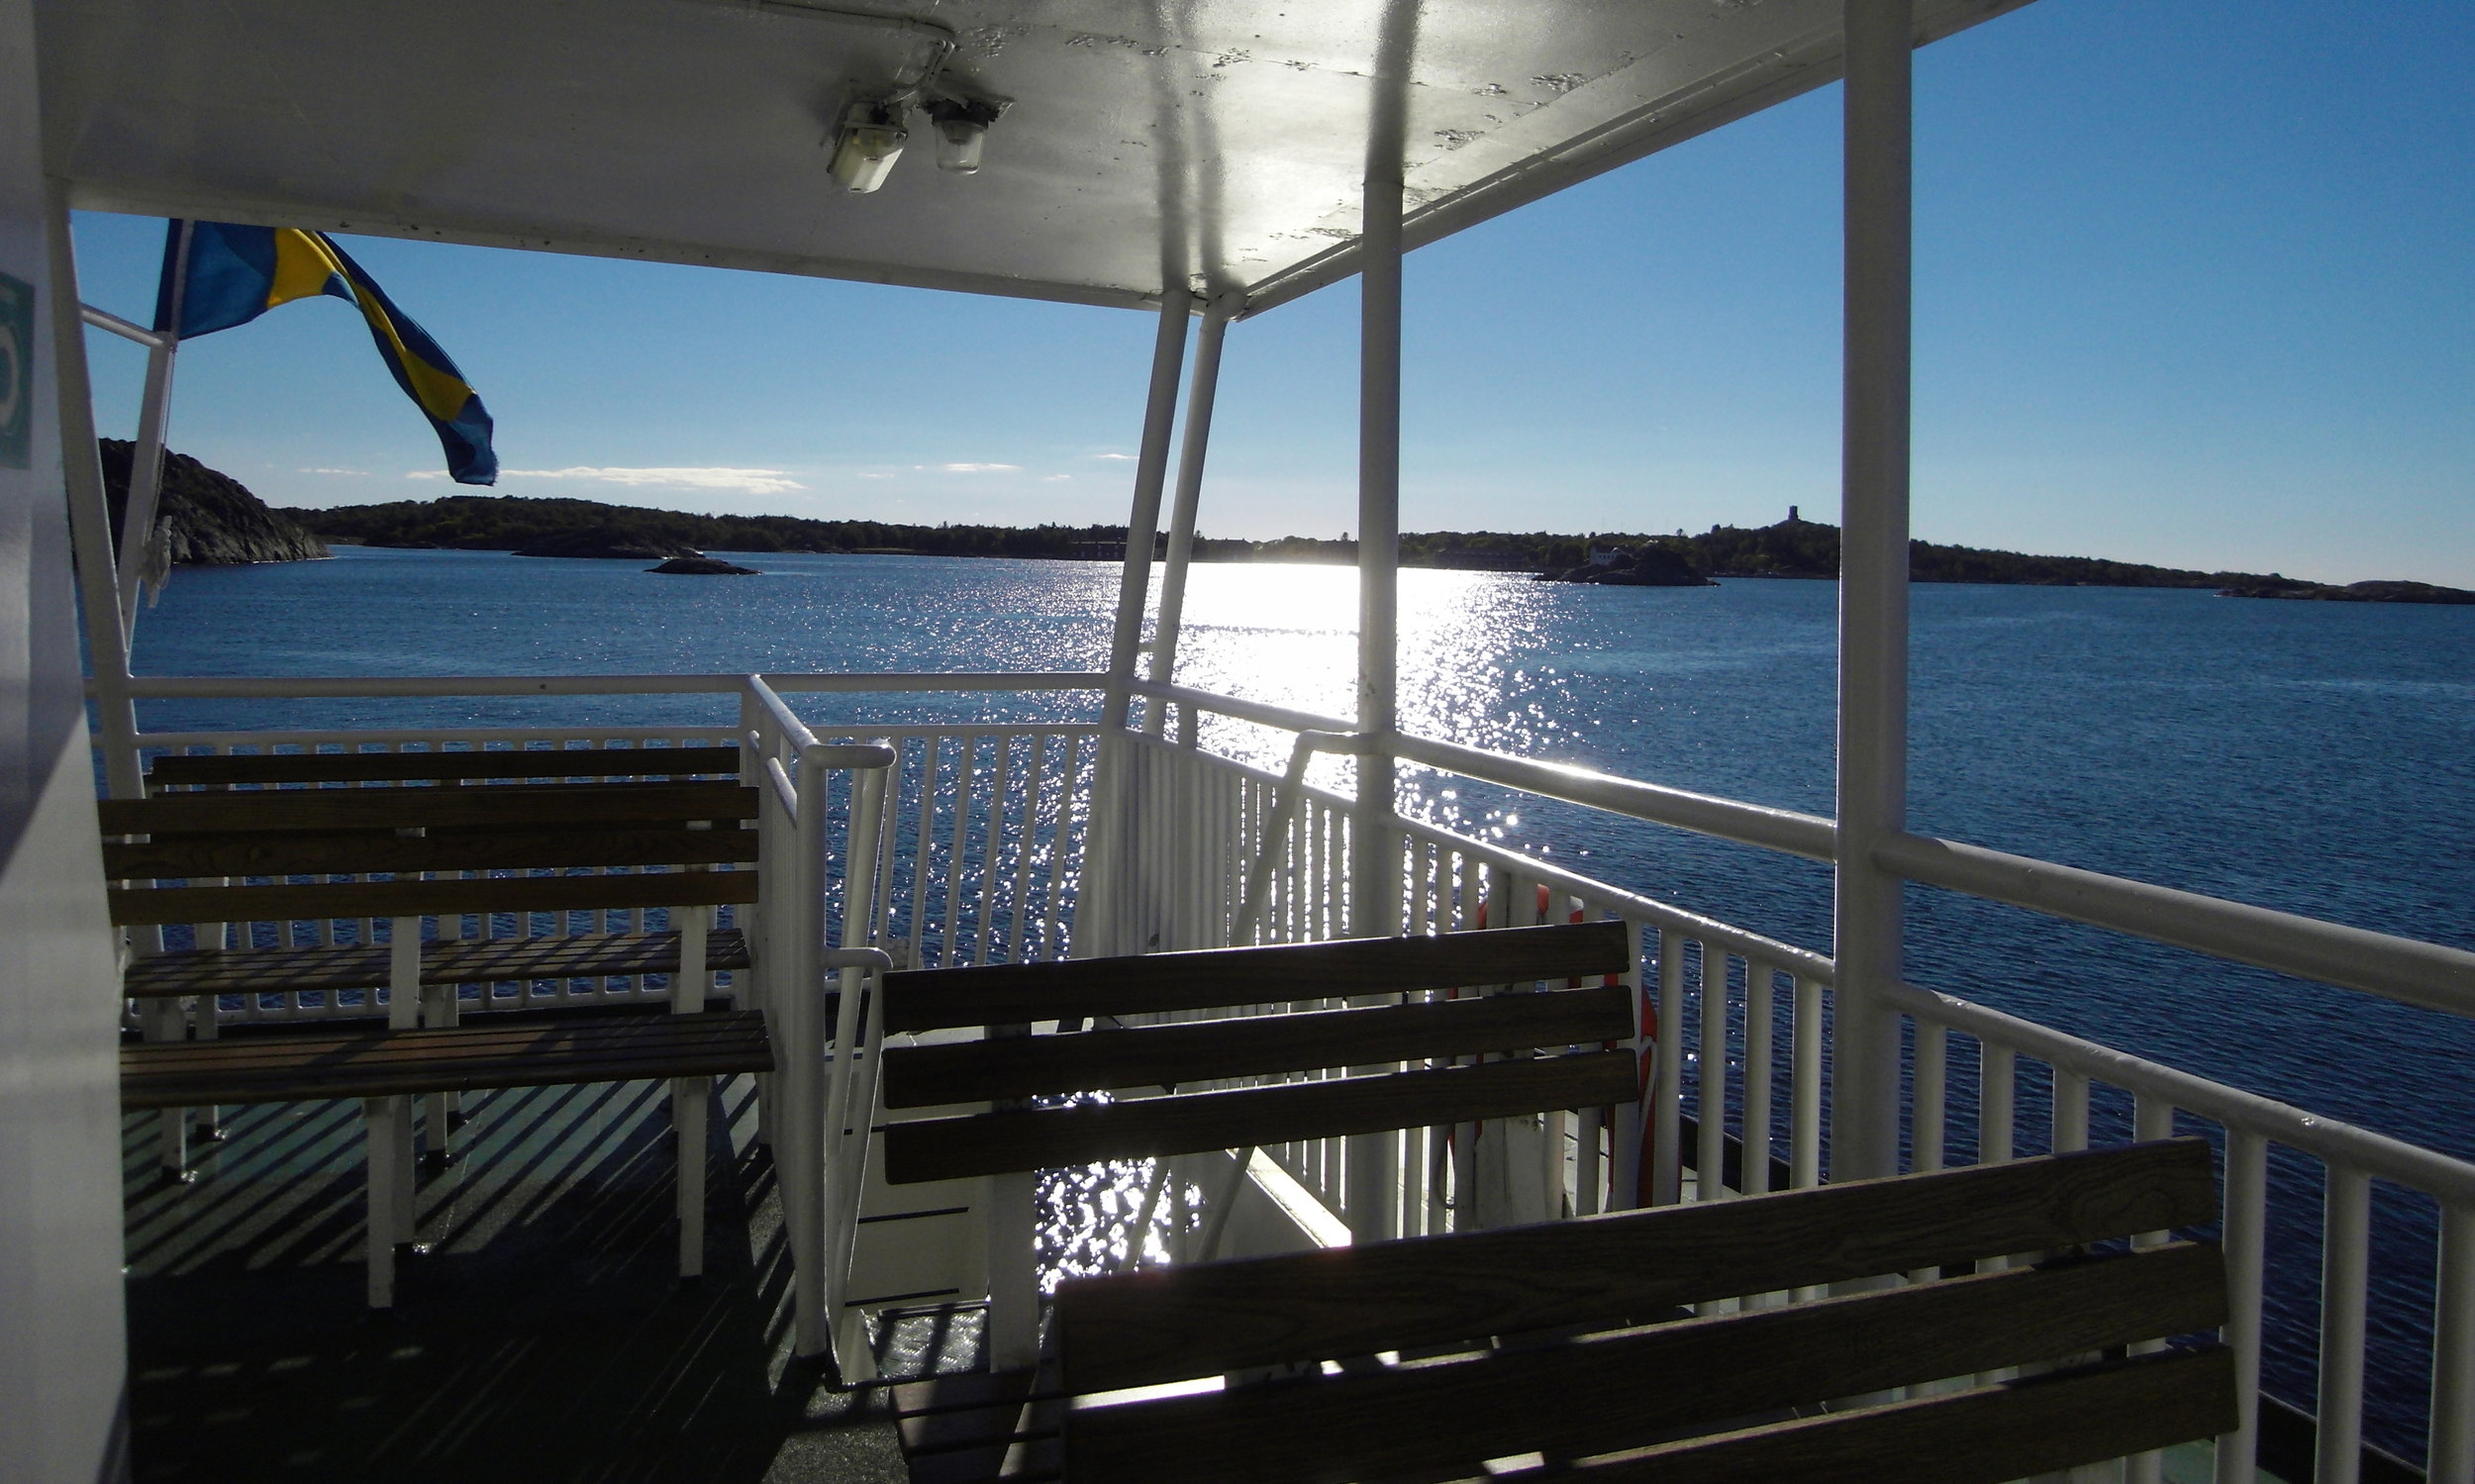 Of course, the tourists are the only ones braving the breeze out on deck, but that was okay with this tourist; on one of many ferries out of Saltholmen.